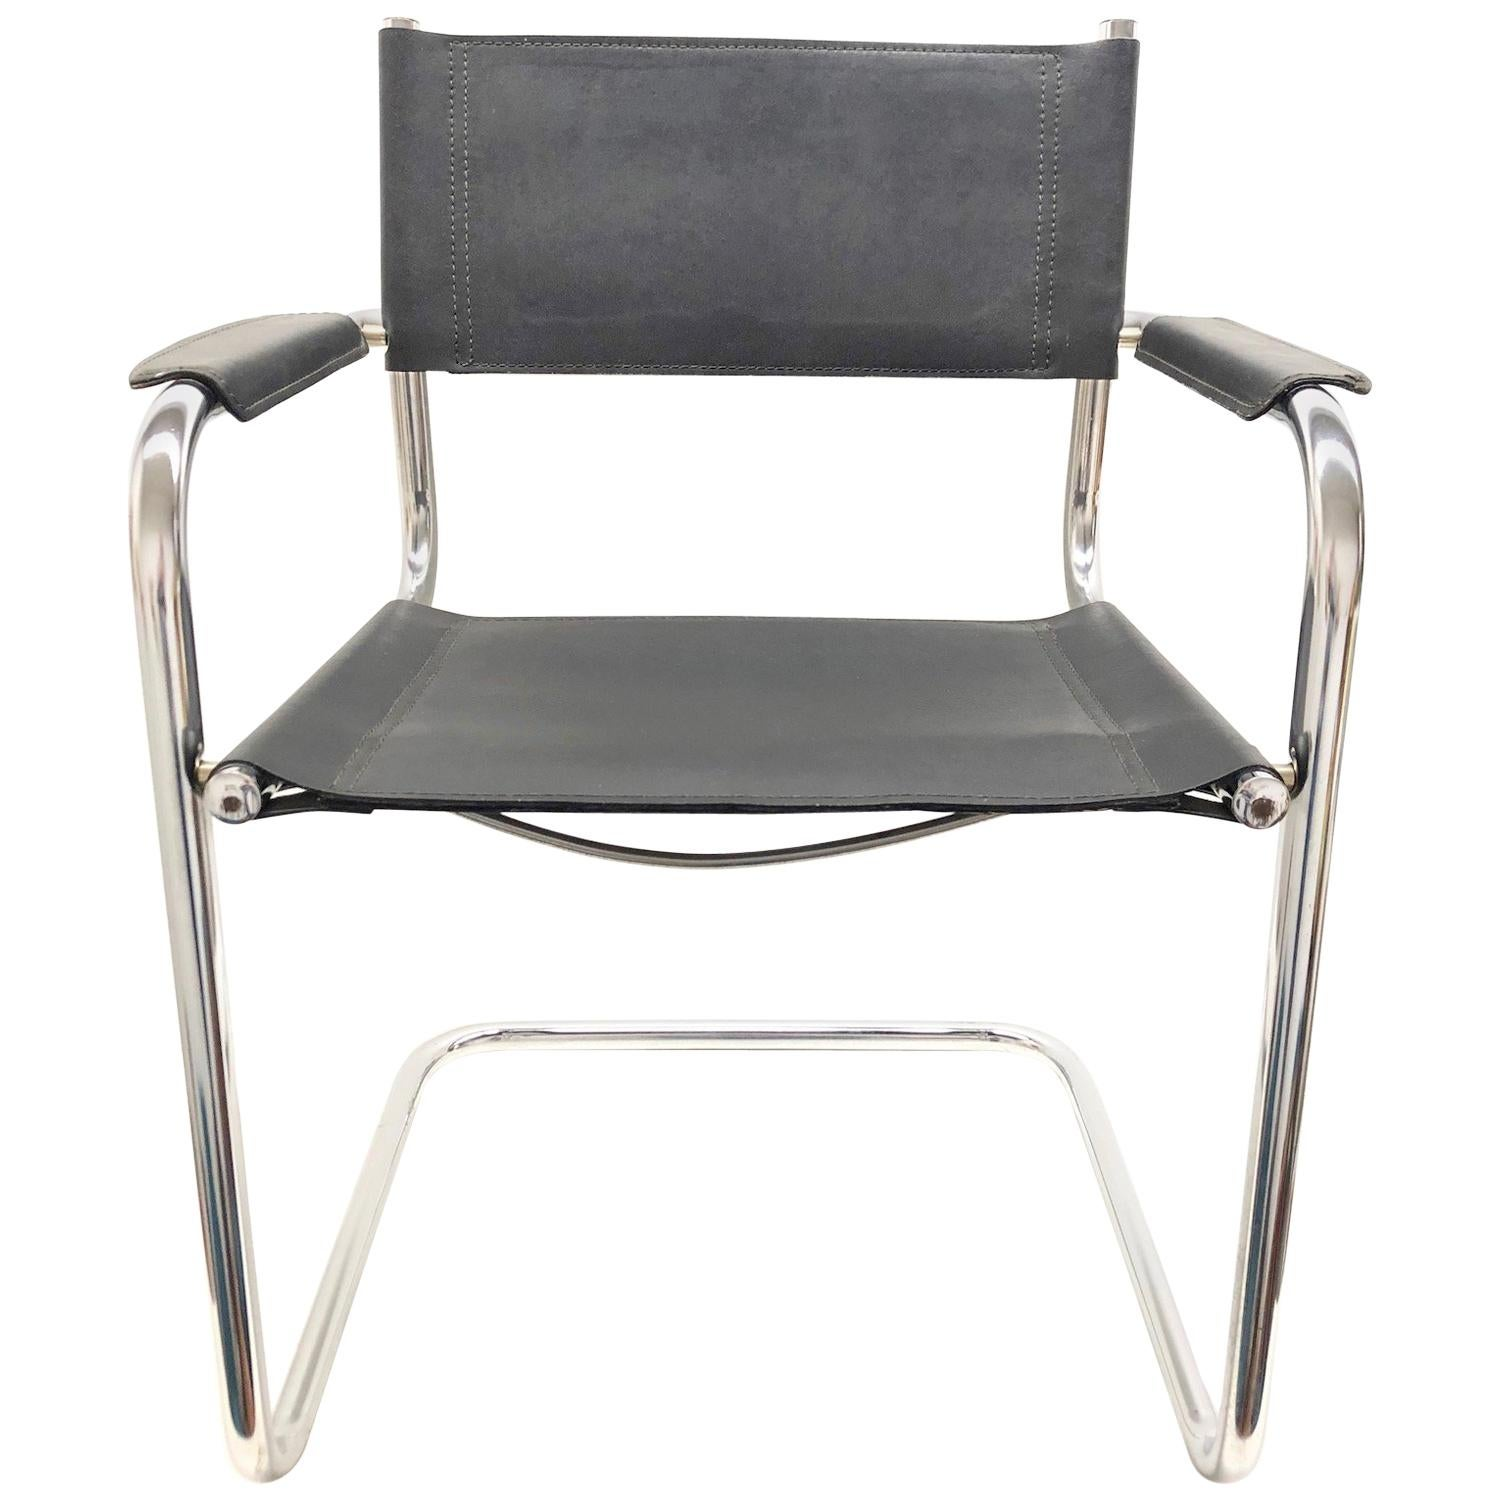 Black Leather Chrome Plated Tubular Steel Cantilever Style Chair German, 1970s